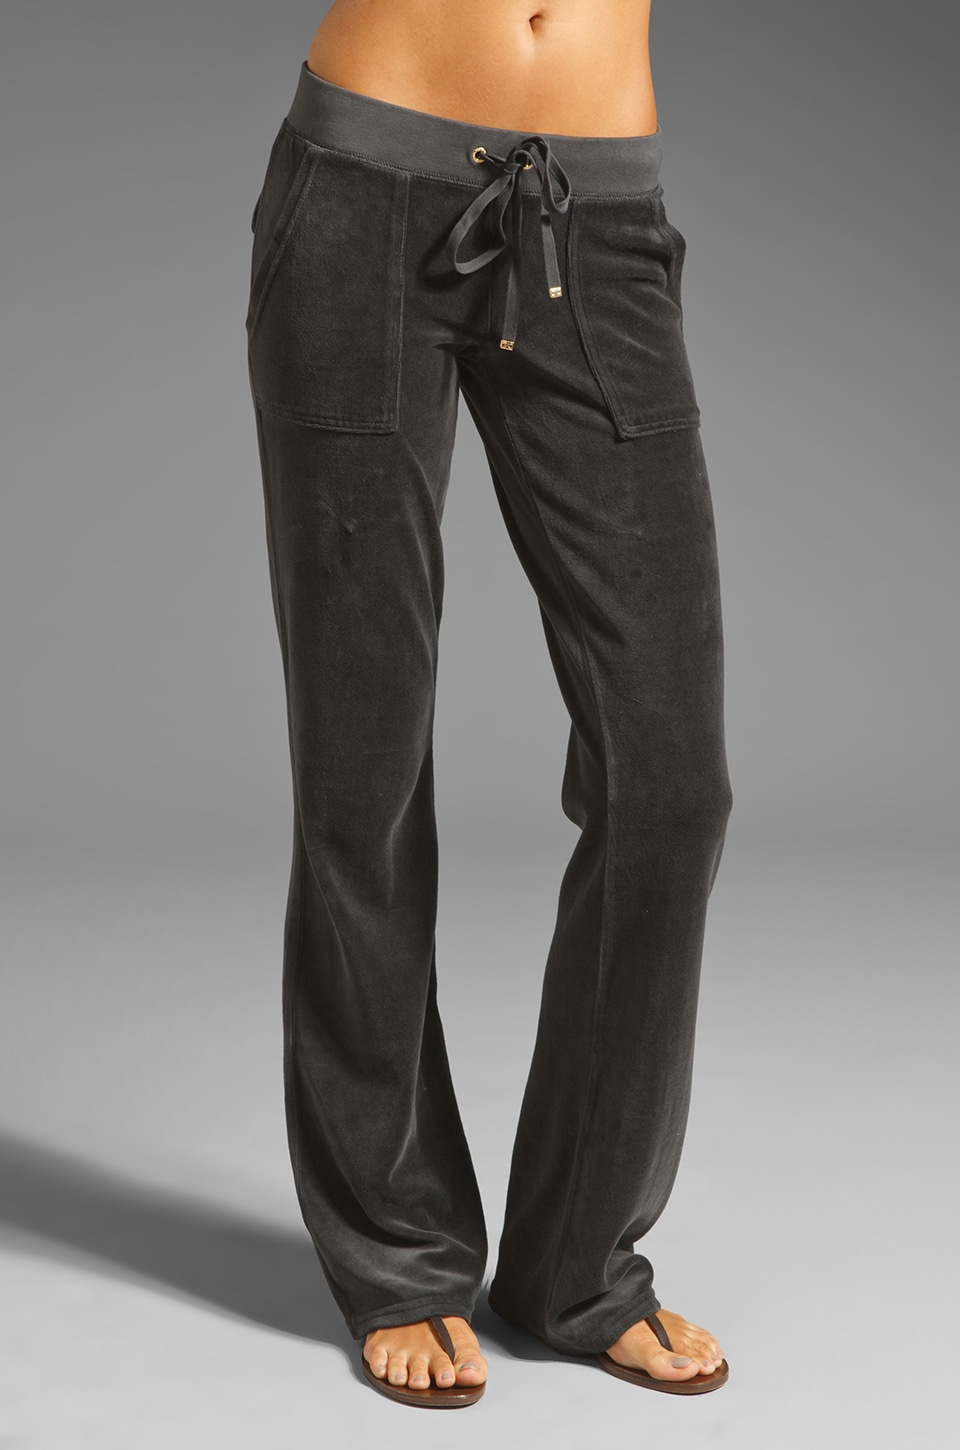 Juicy Couture Bootcut Pant in Top Hat